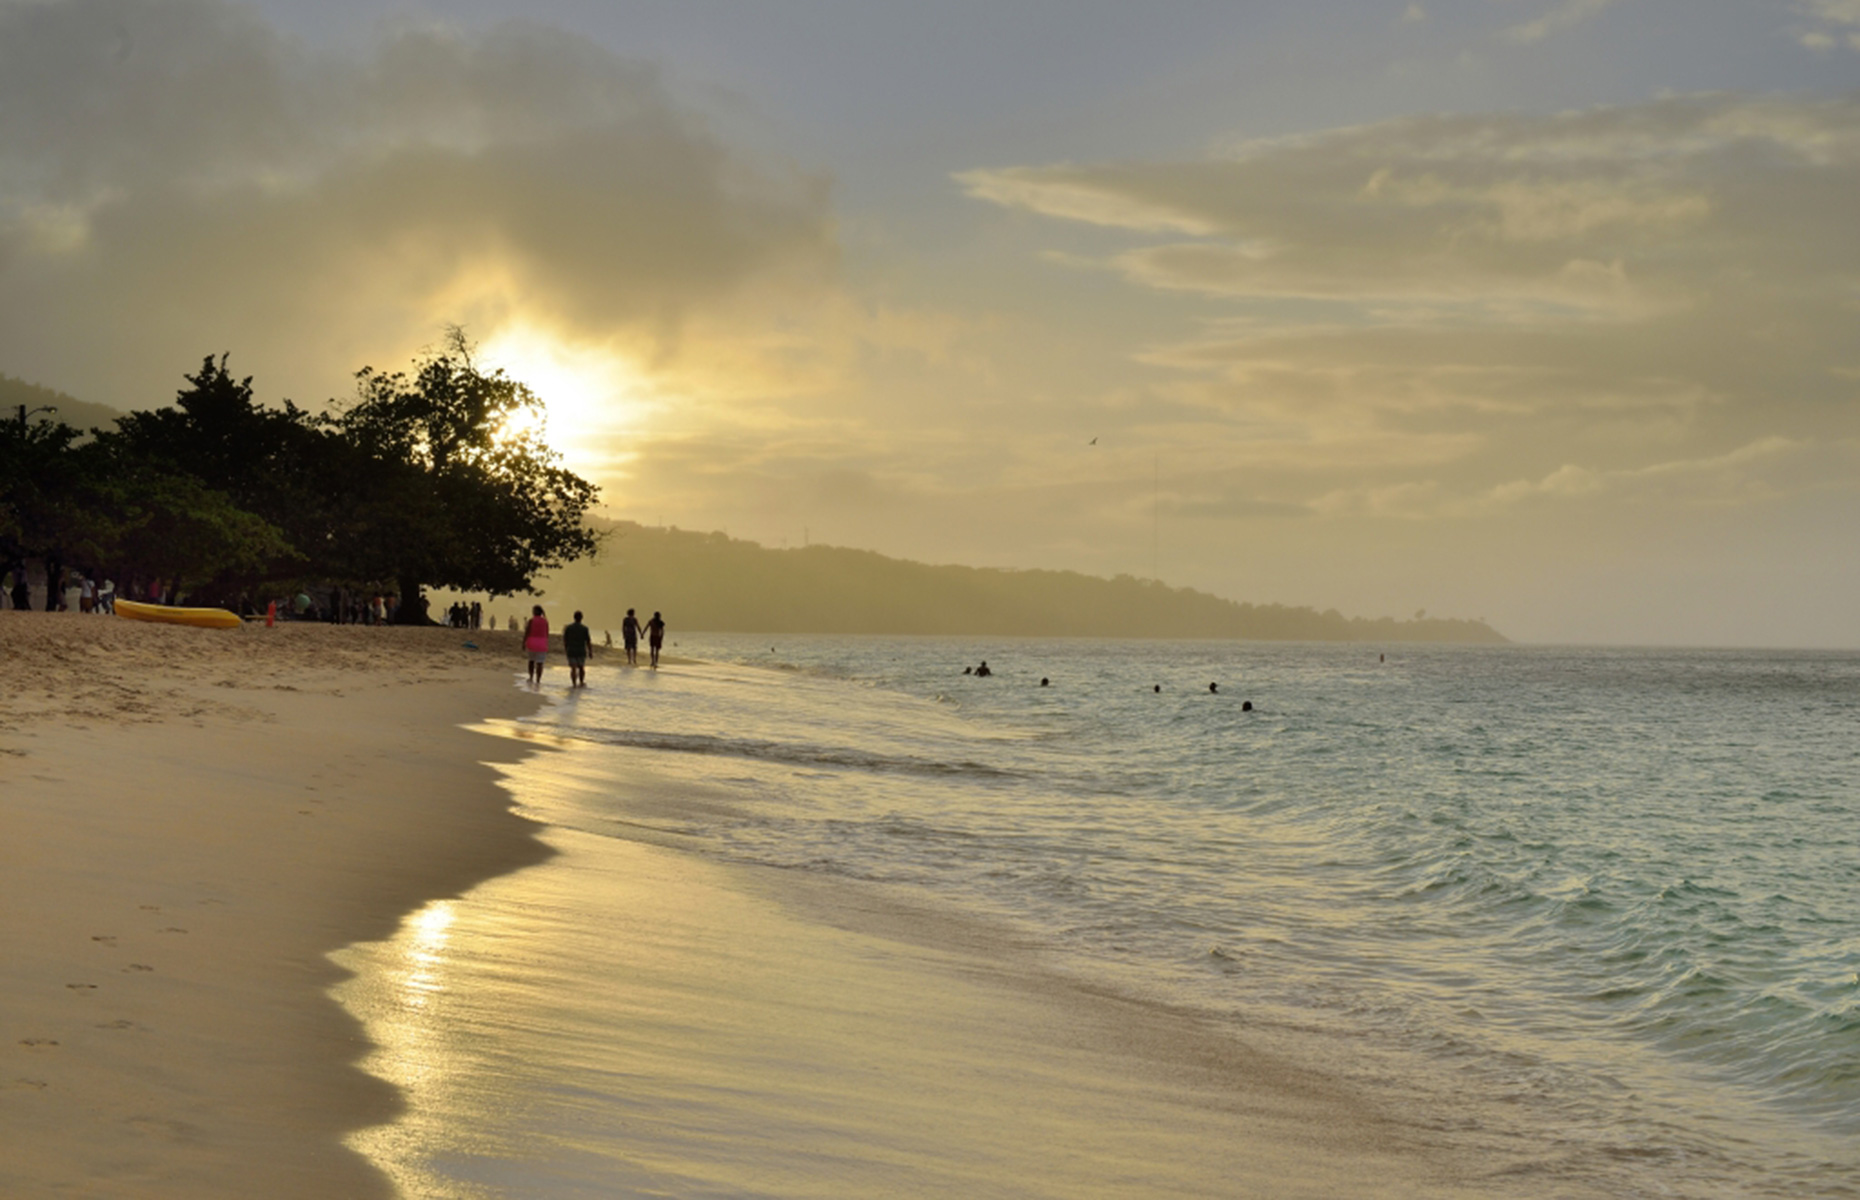 Grand Anse Beach, Grenada, at sunset